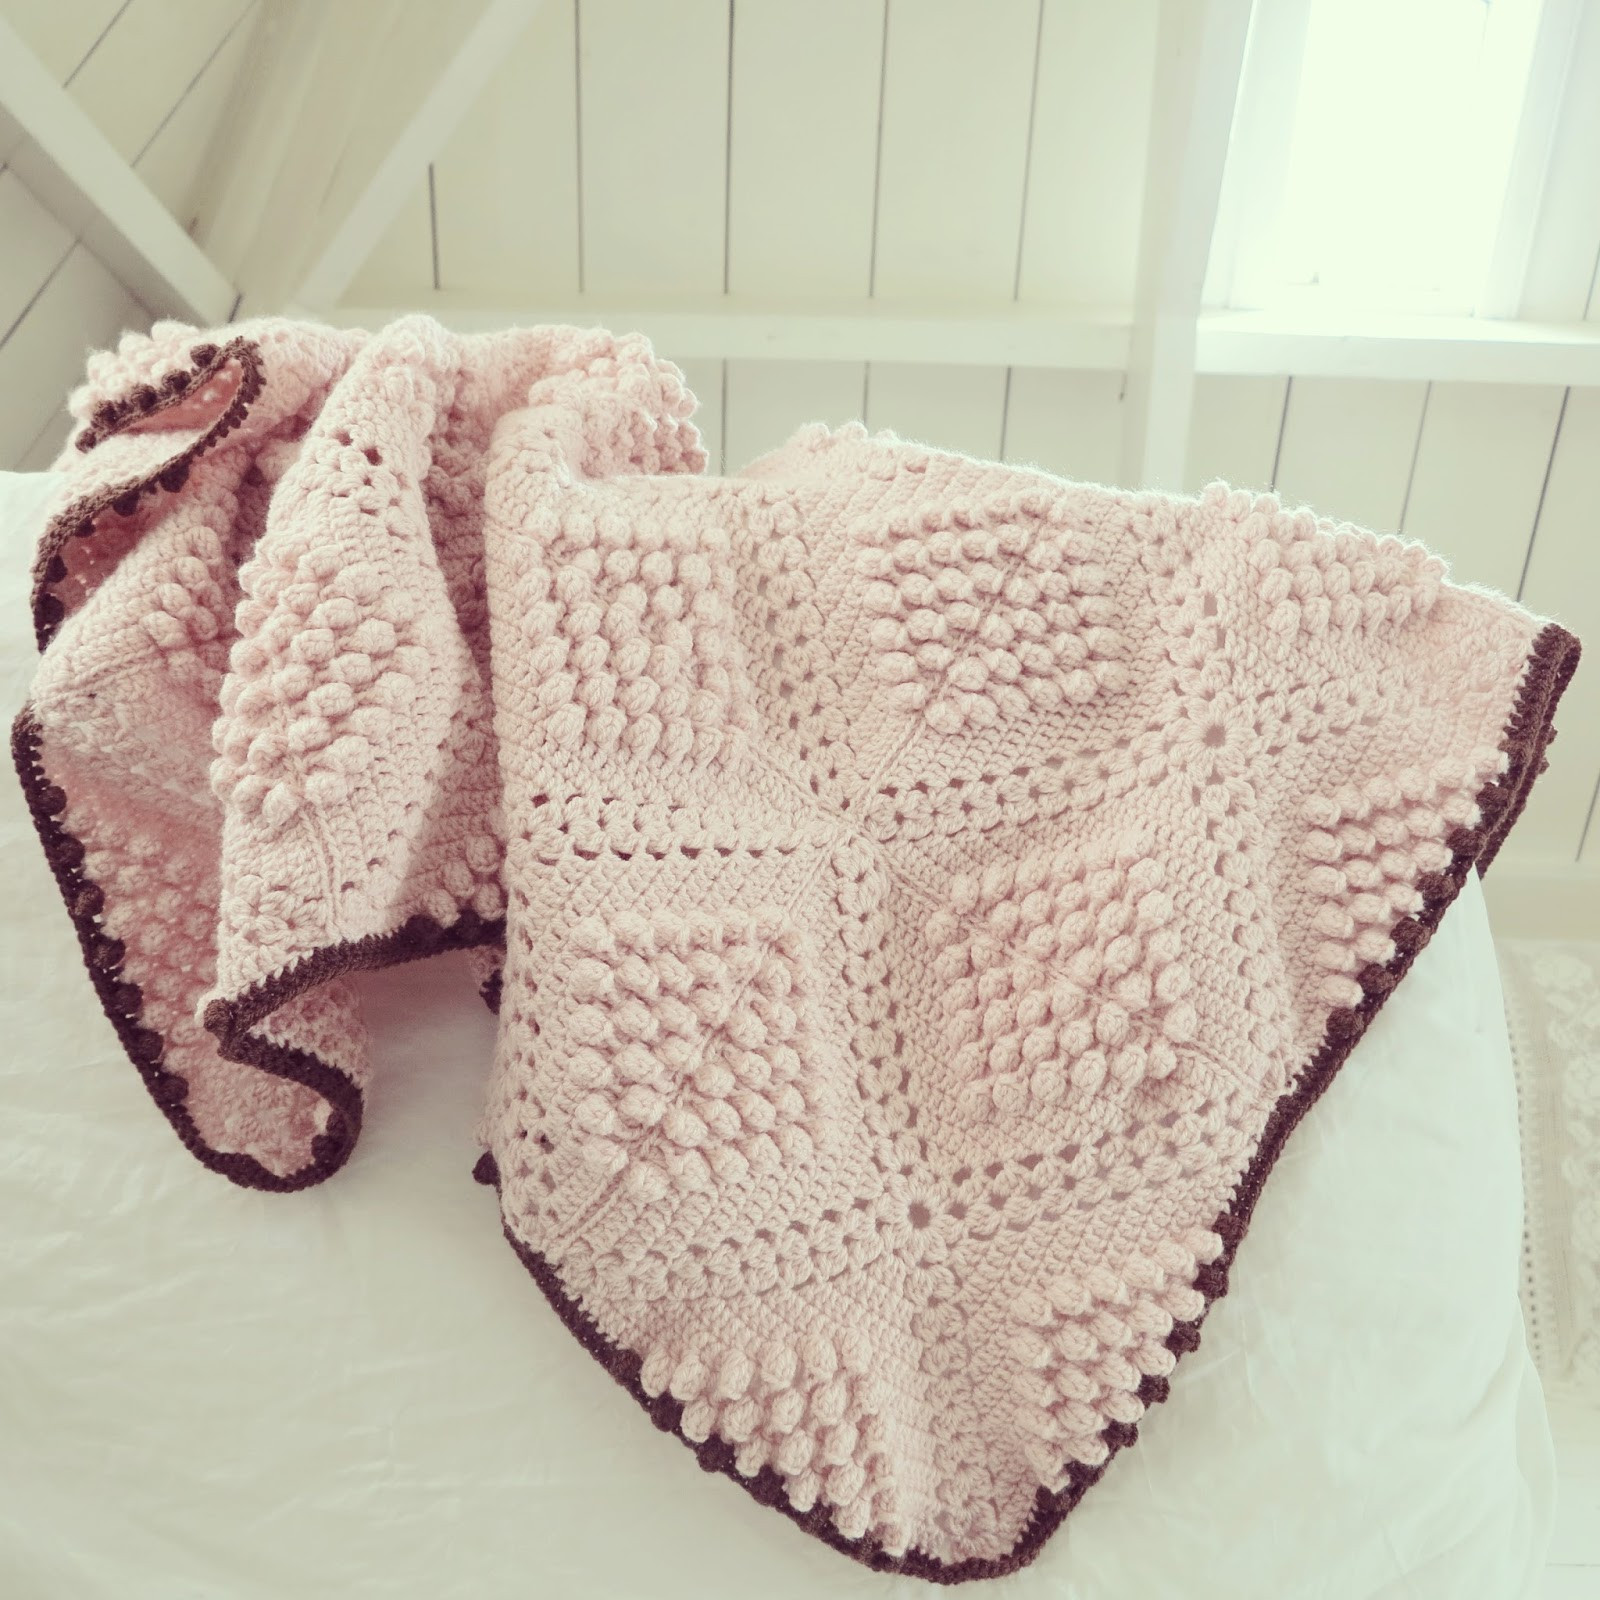 Crochet Throws Patterns Best Of 10 Free Crochet Patterns & Tutorials for Baby Blankets Of Wonderful 44 Images Crochet Throws Patterns